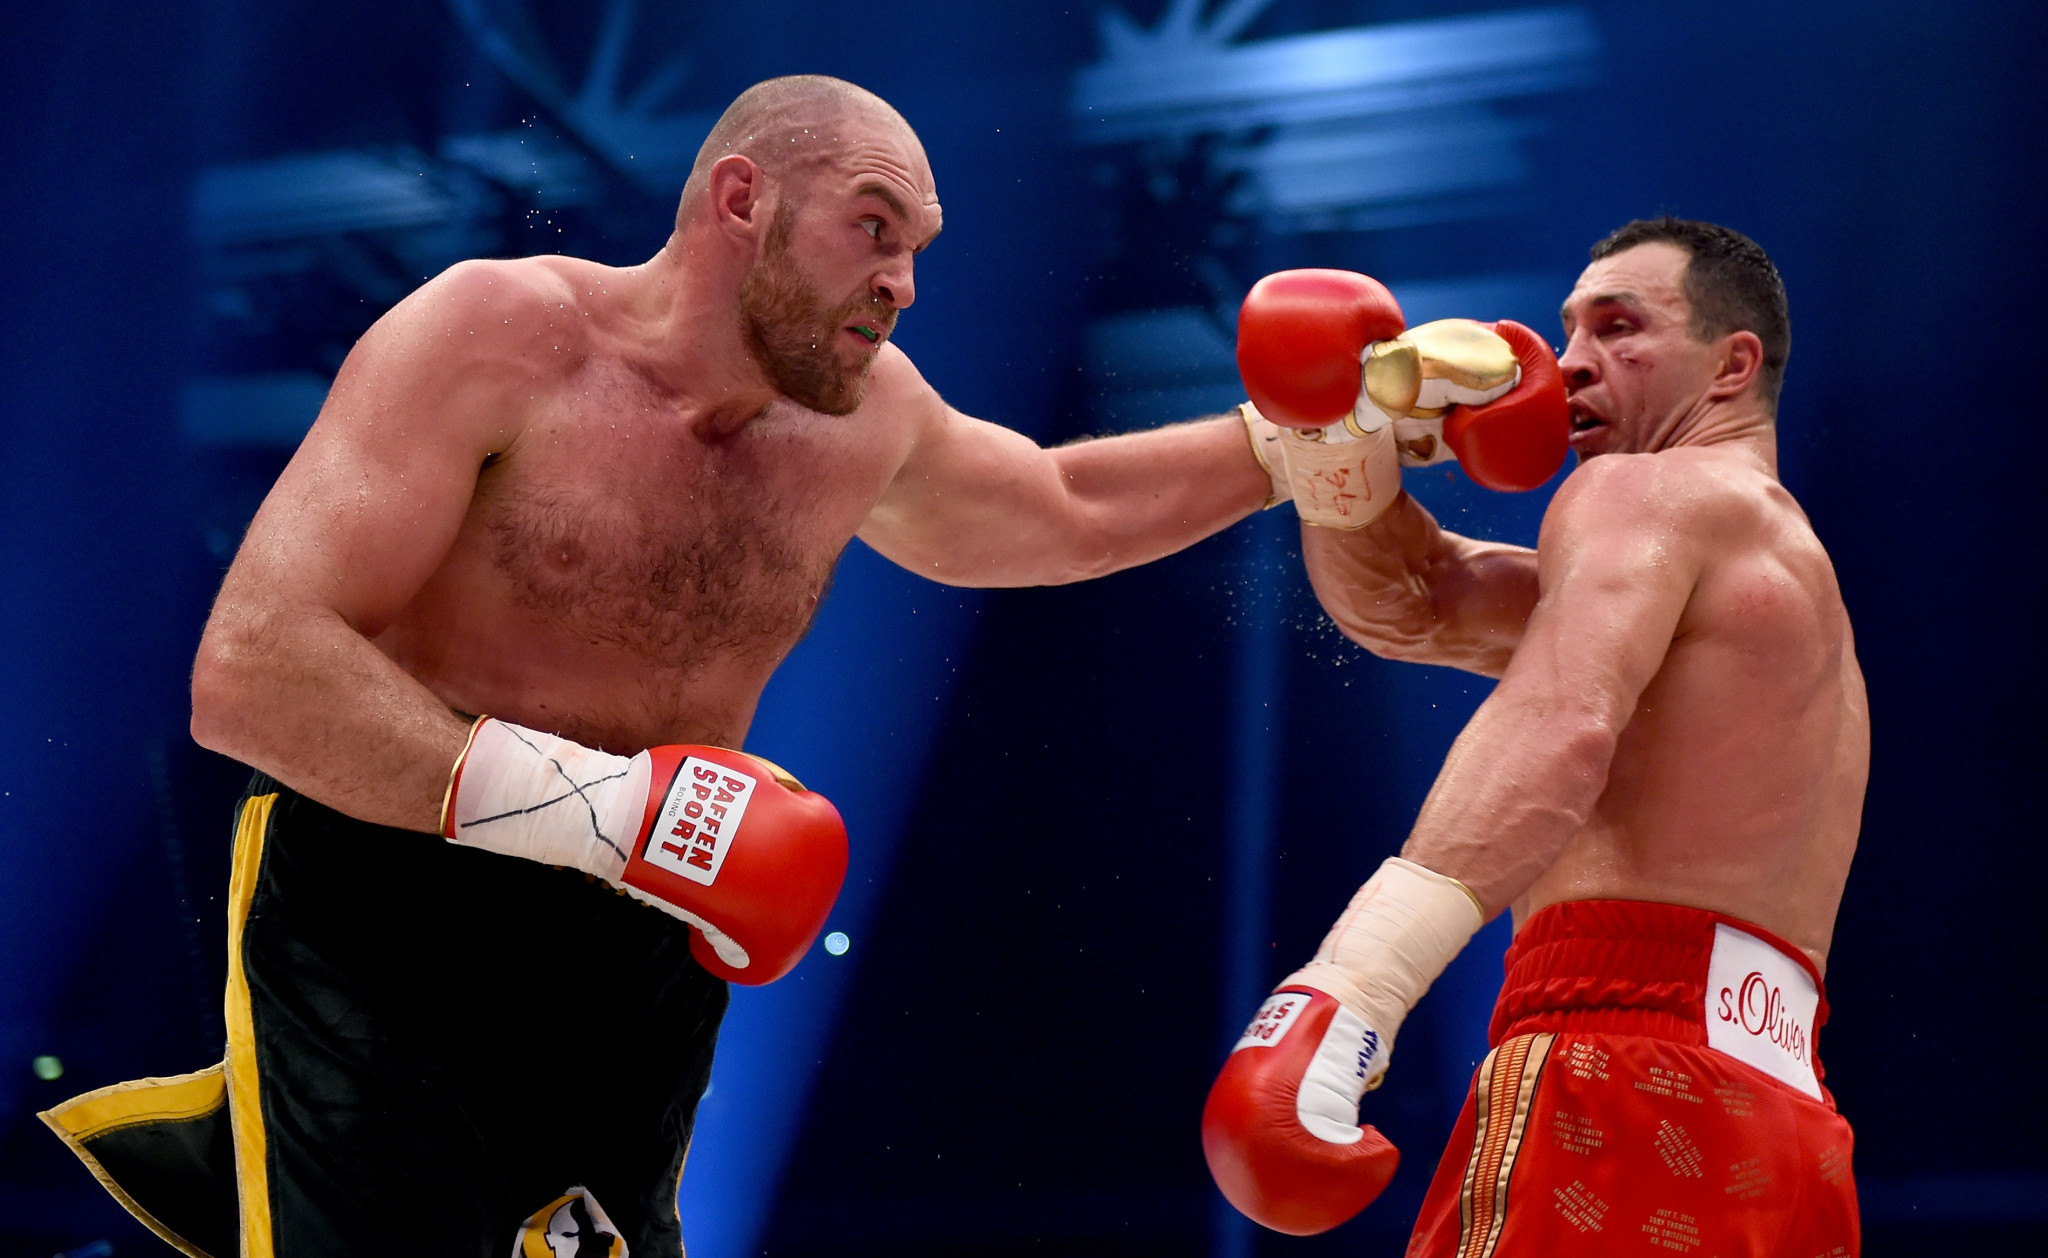 Tyson Fury, left, beat Wladimir Klitschko, right, to claim the world heavyweight title in November 2015, despite having tested positive for nandrolone nine months earlier ©Getty Images